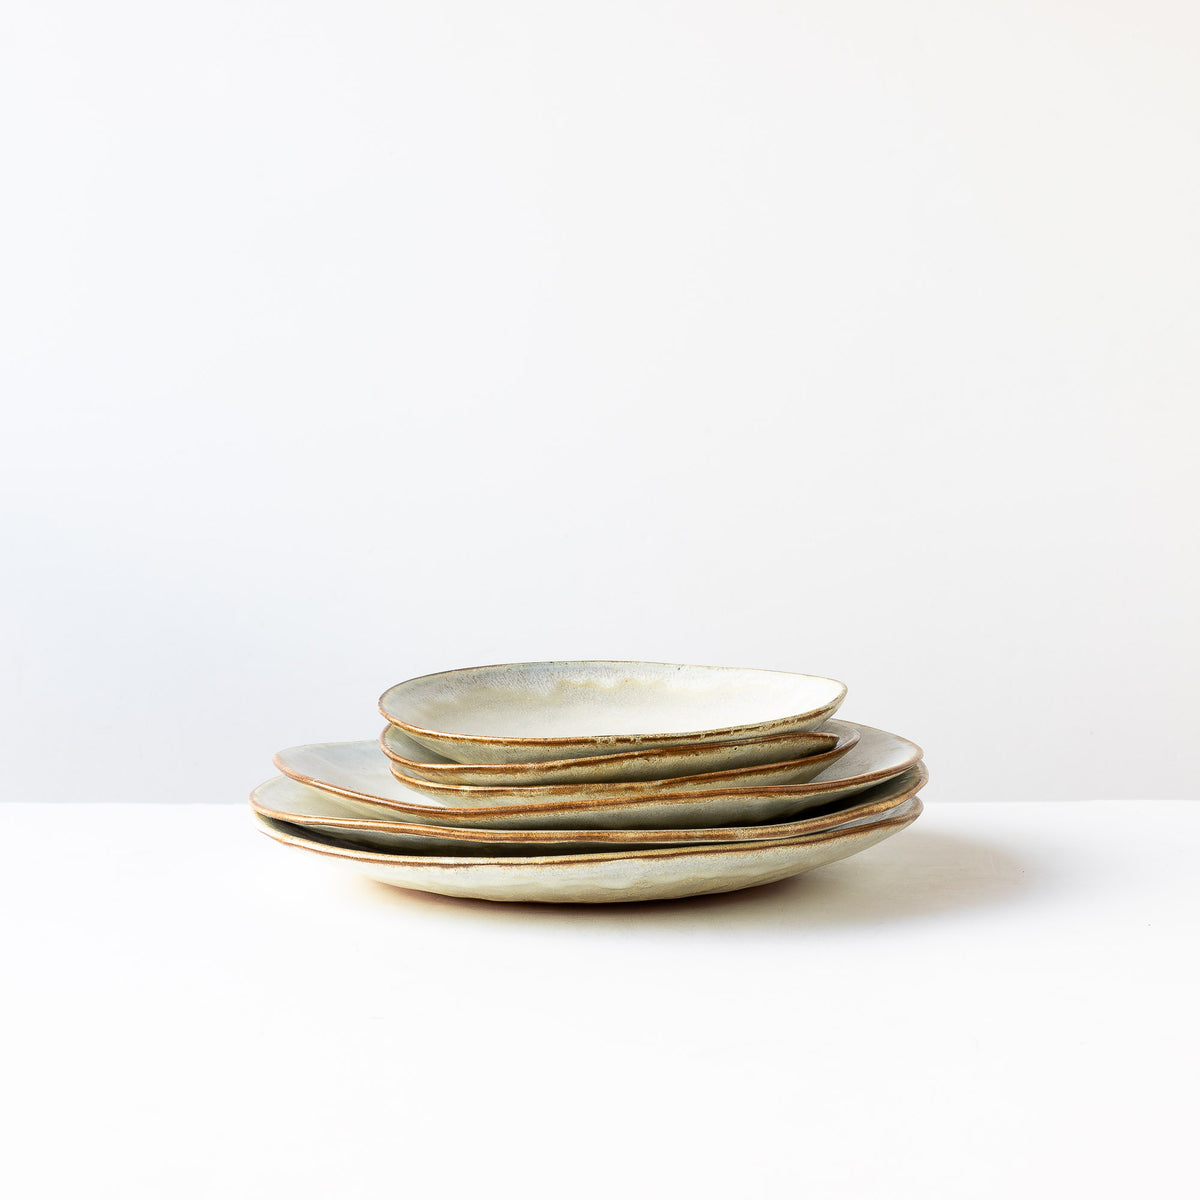 A Pile of Medium & Large Handbuilt Plates in Red Stoneware & Cream Glaze - Sold by Chic & Basta